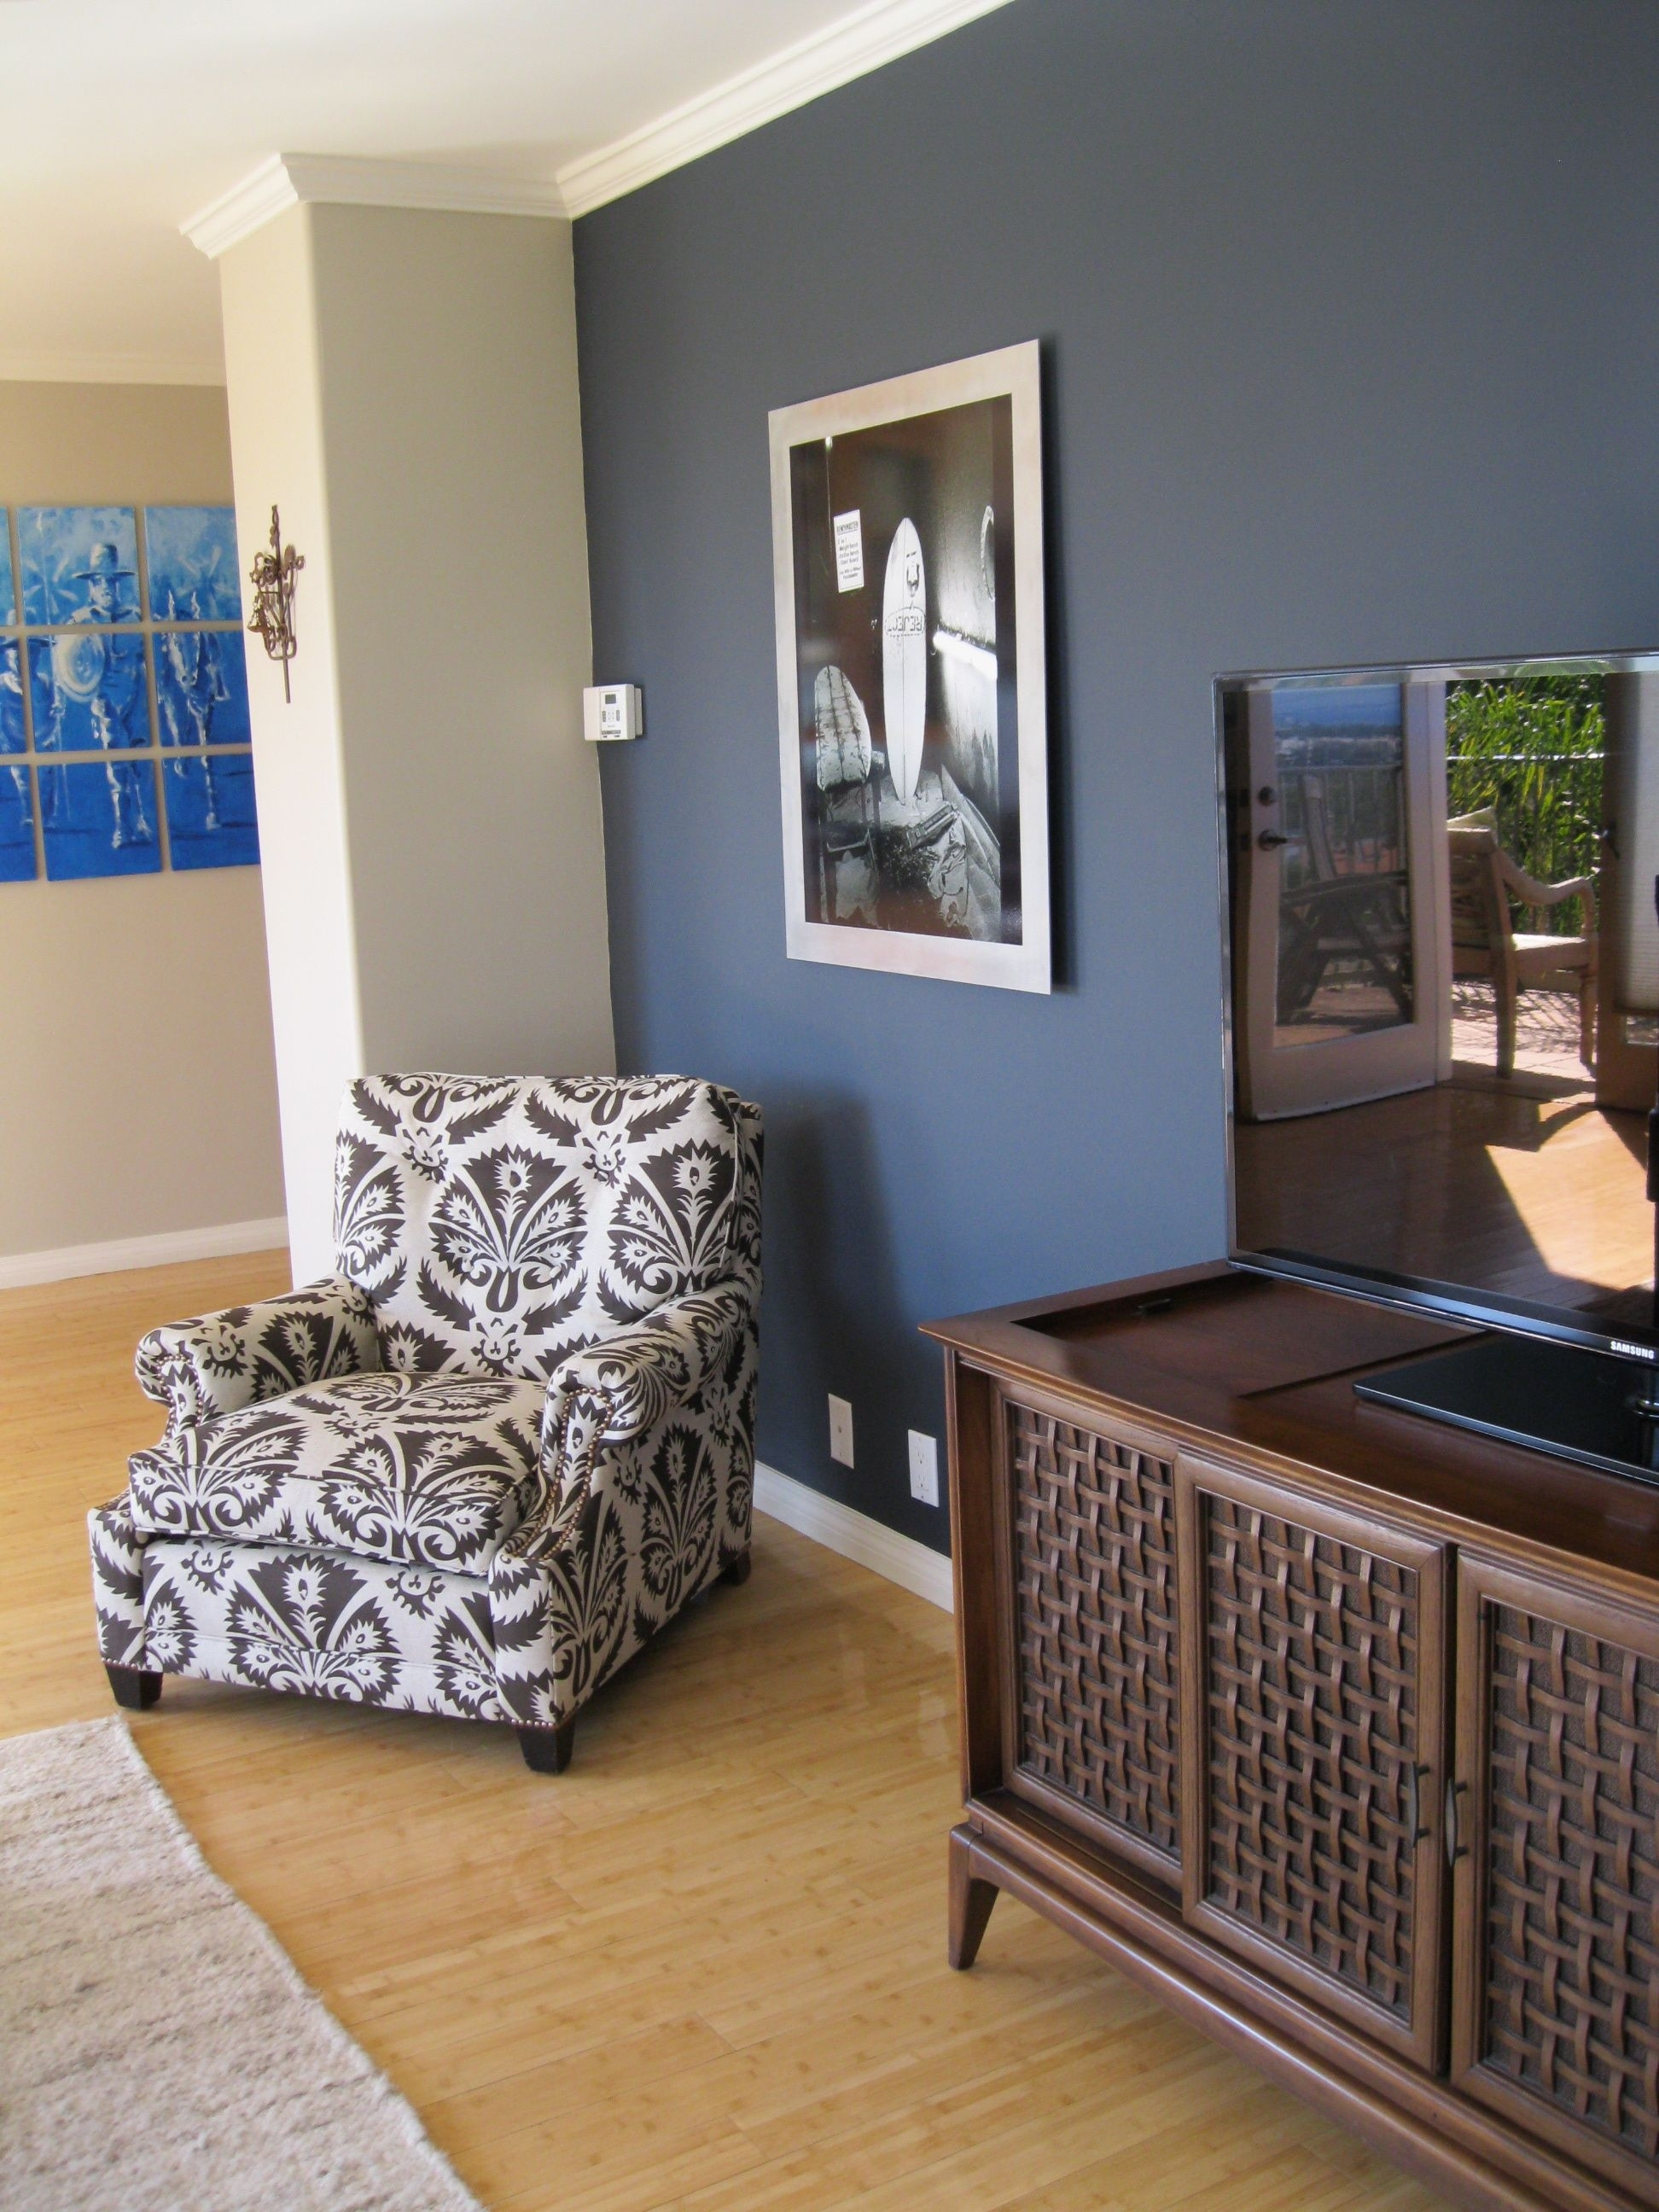 Shade Of Blue On Wall Camoflauges Tv. Love The Chair Too! | Home In Current Navy Wall Accents (Gallery 11 of 15)